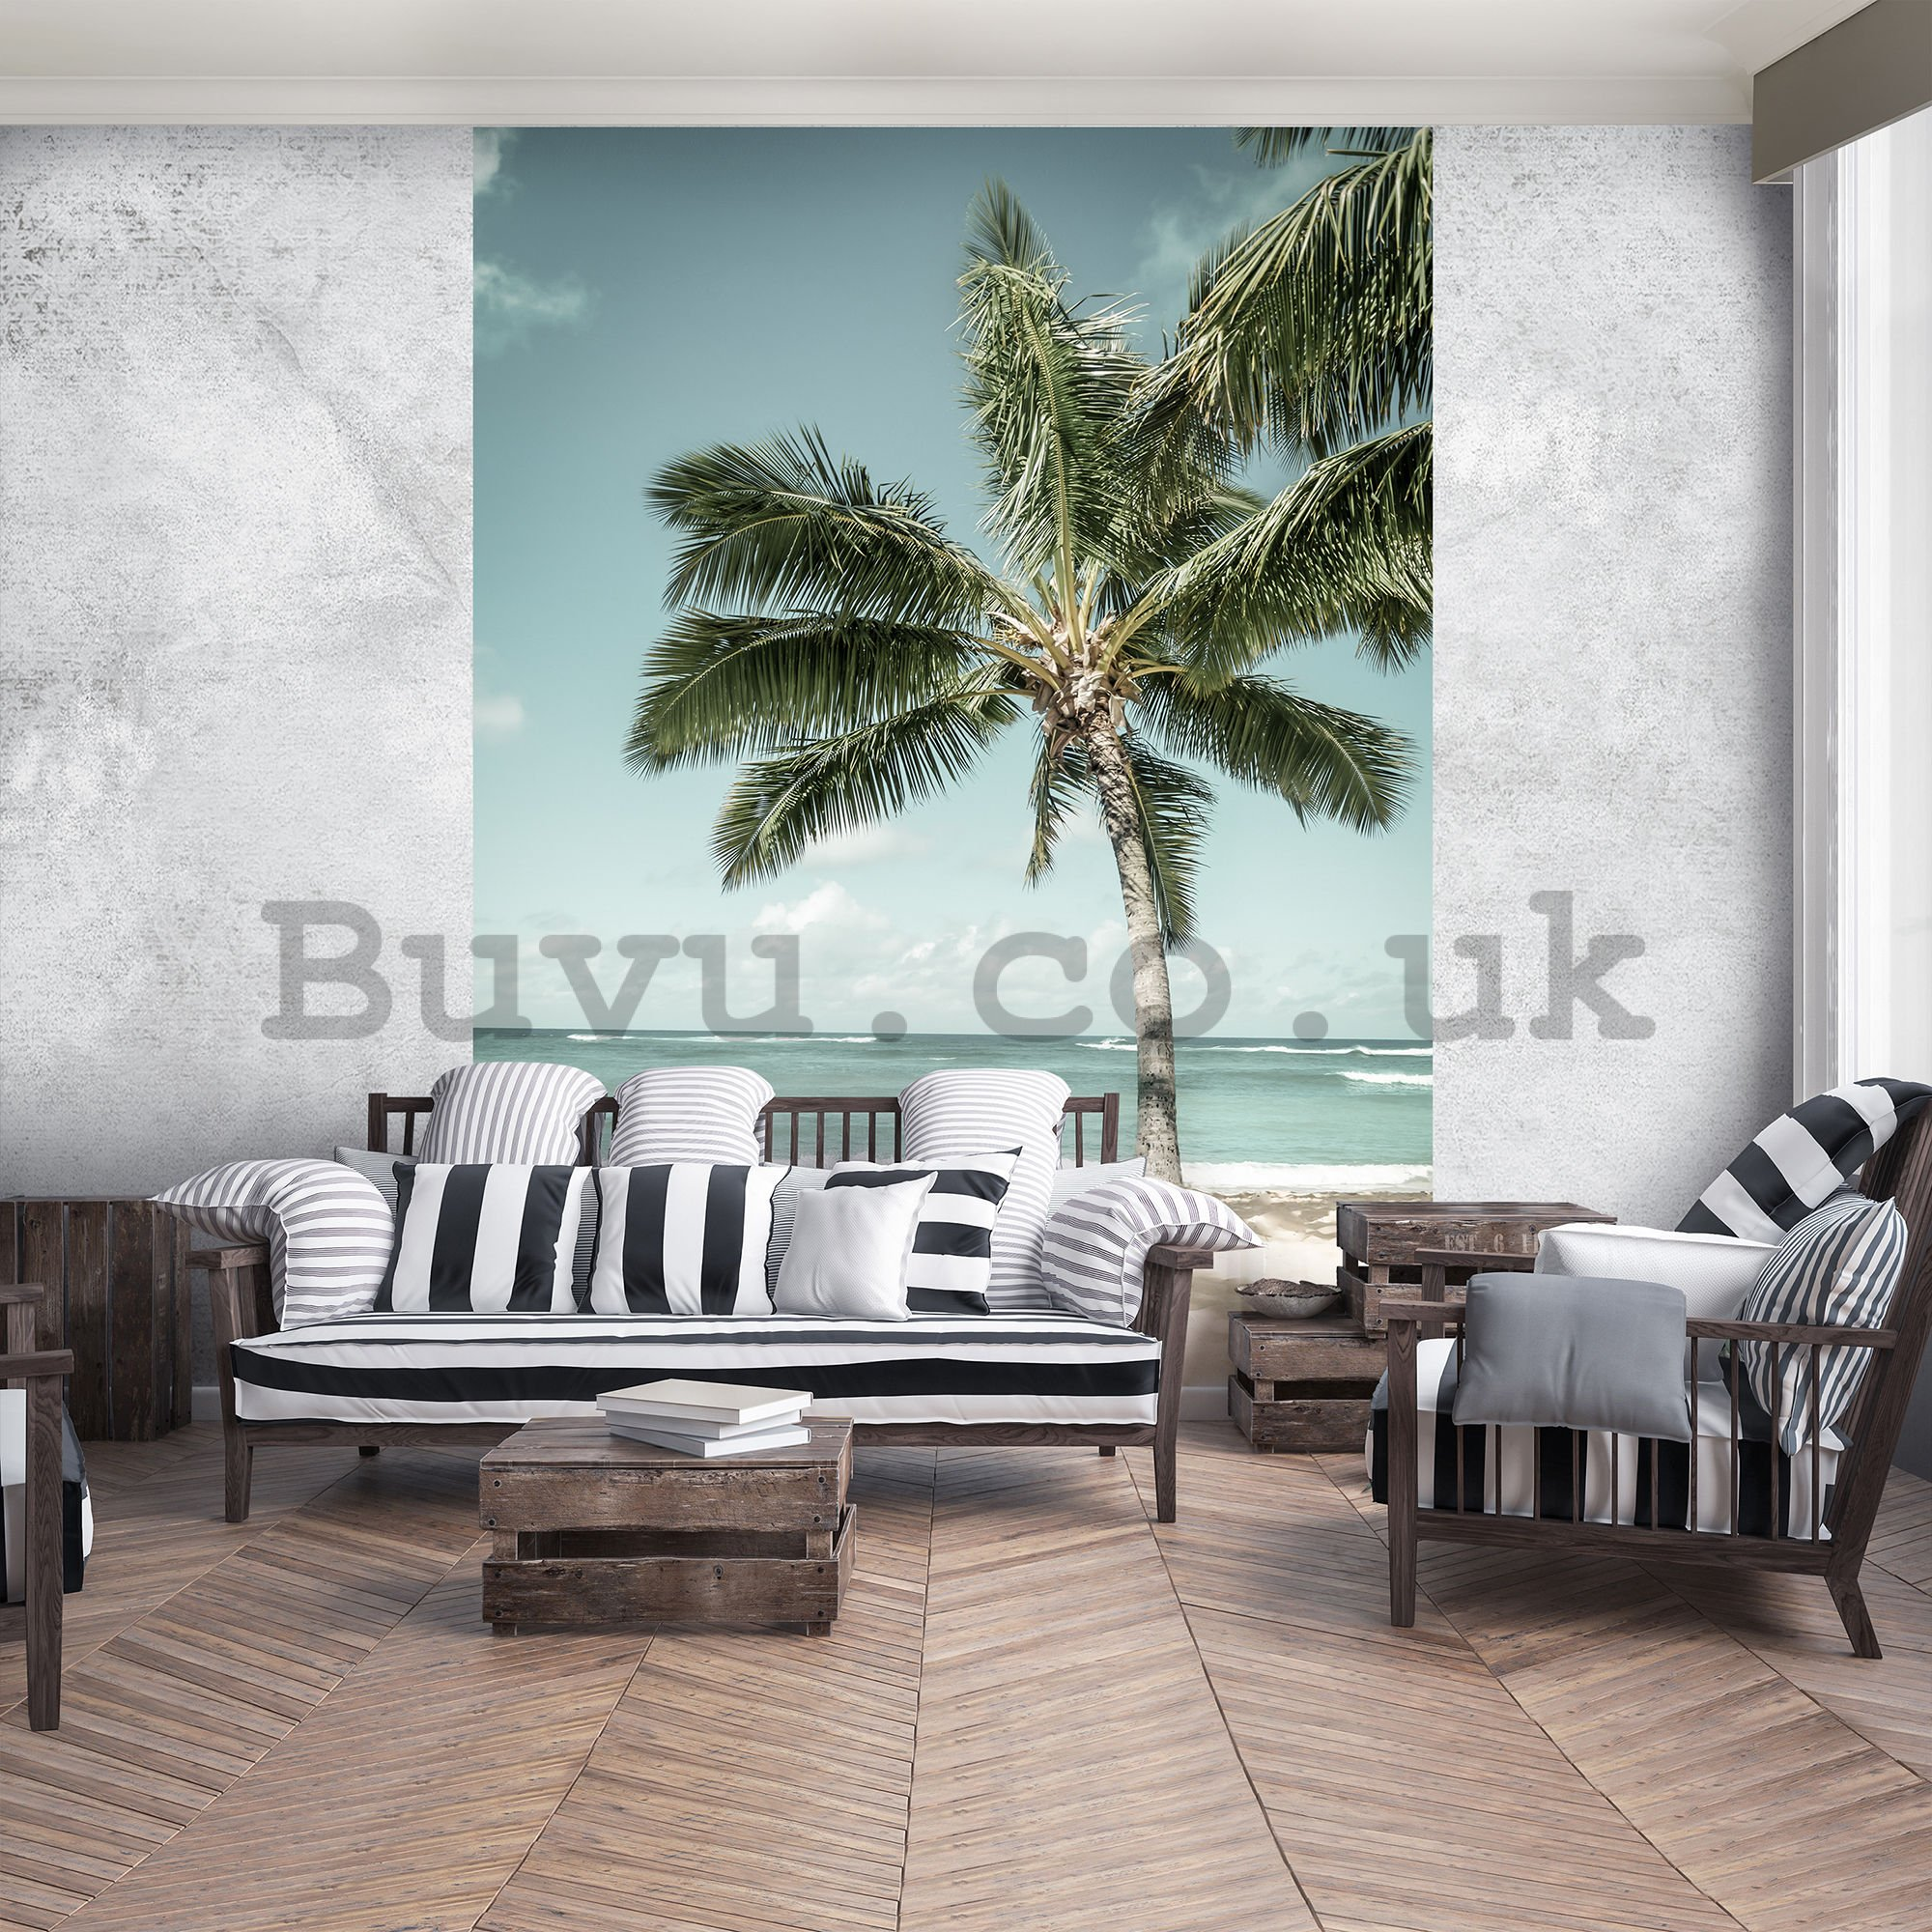 Wall mural: Palm tree by the sea - 254x184 cm